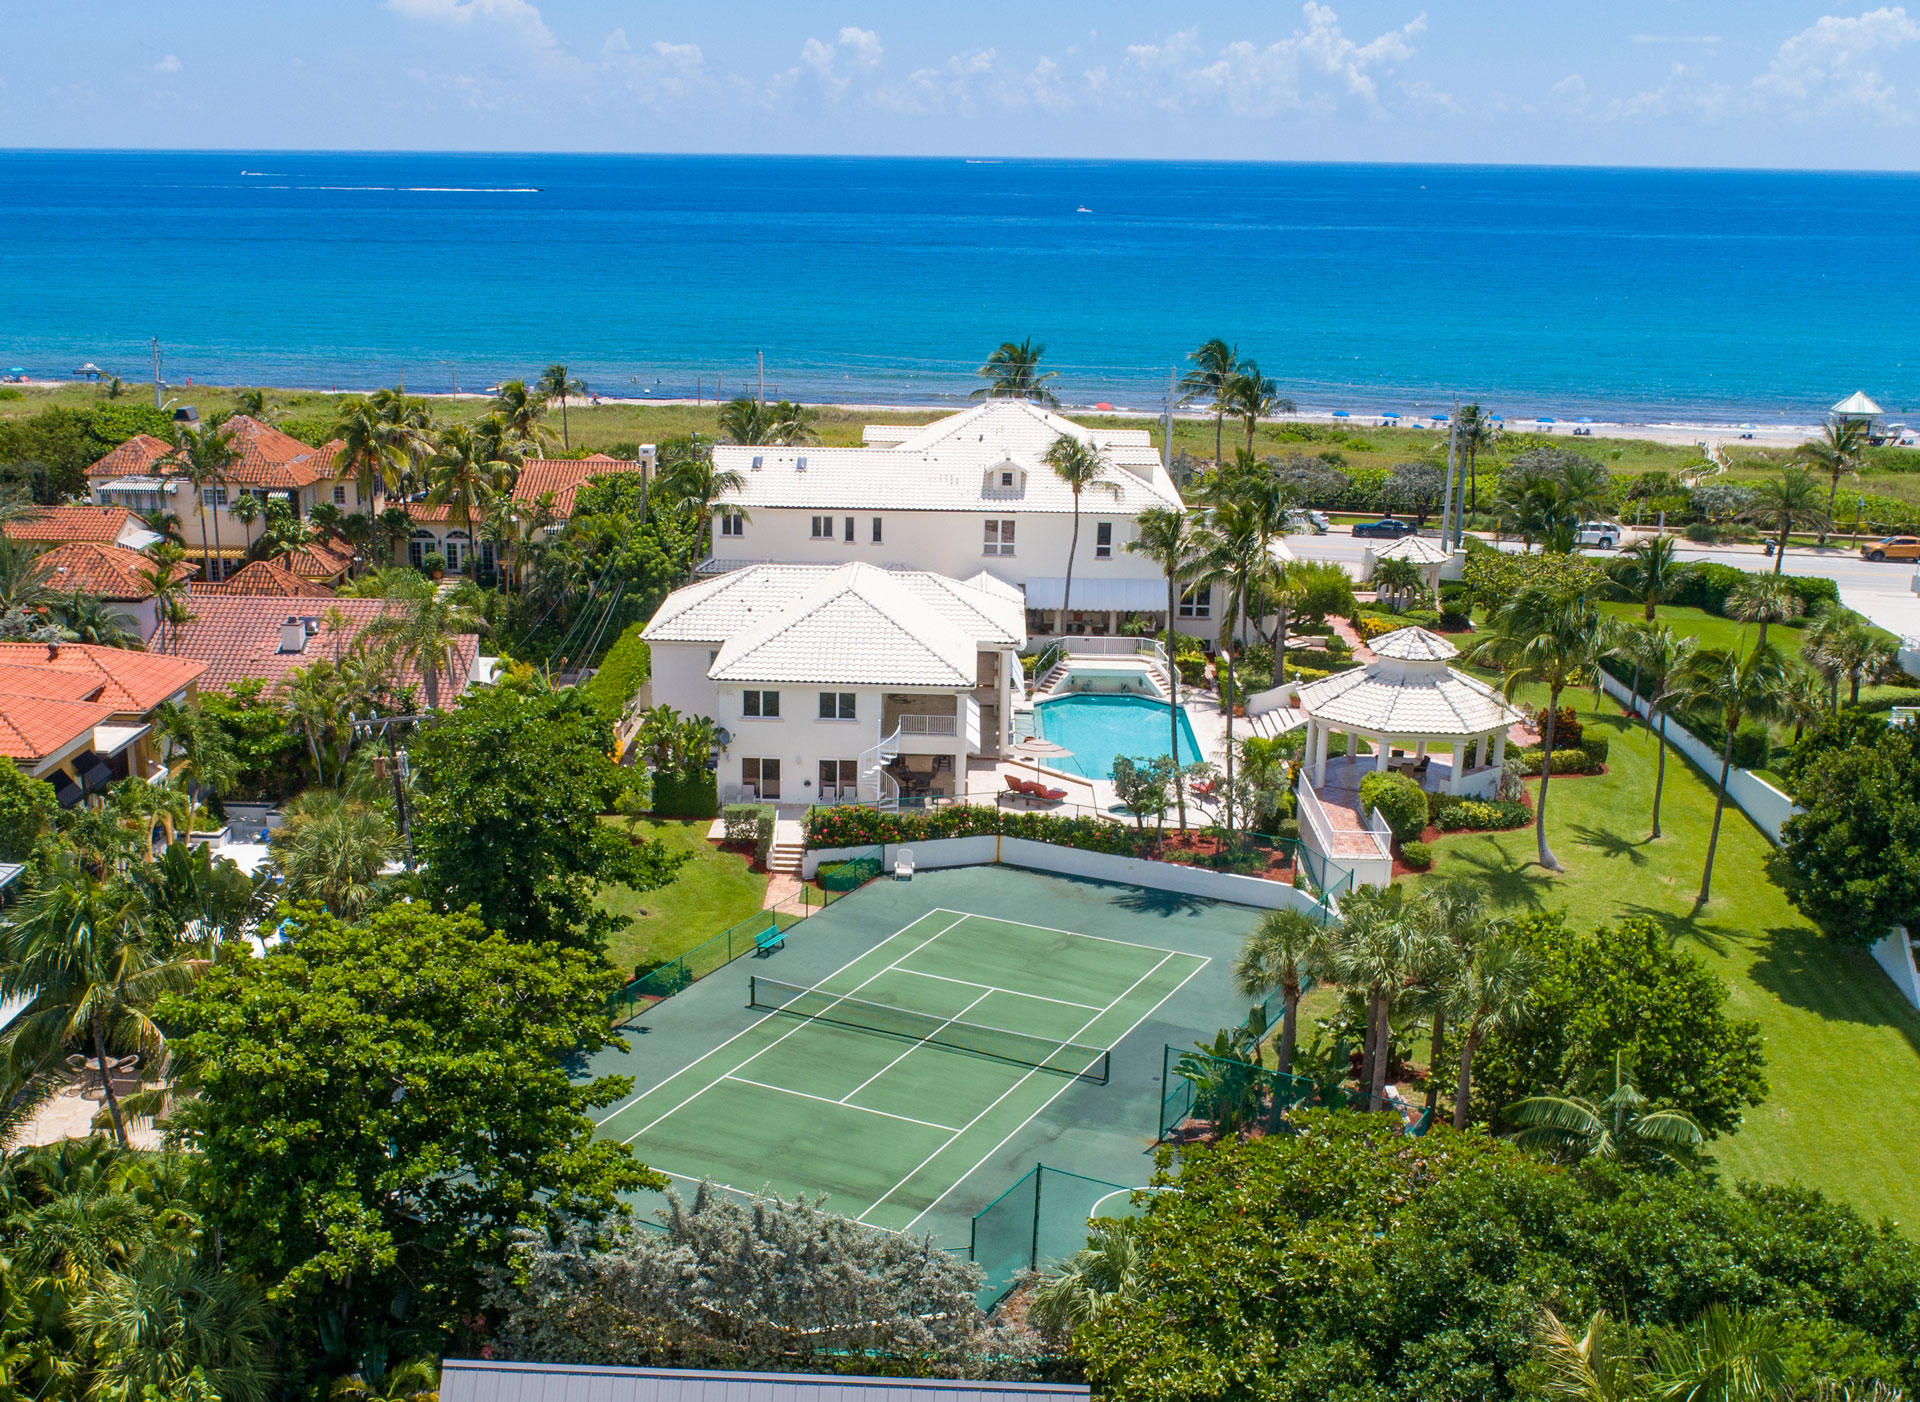 222 Ocean Boulevard, Delray Beach, Florida 33483, 6 Bedrooms Bedrooms, ,8.1 BathroomsBathrooms,Single Family Detached,For Sale,Ocean,RX-10649216